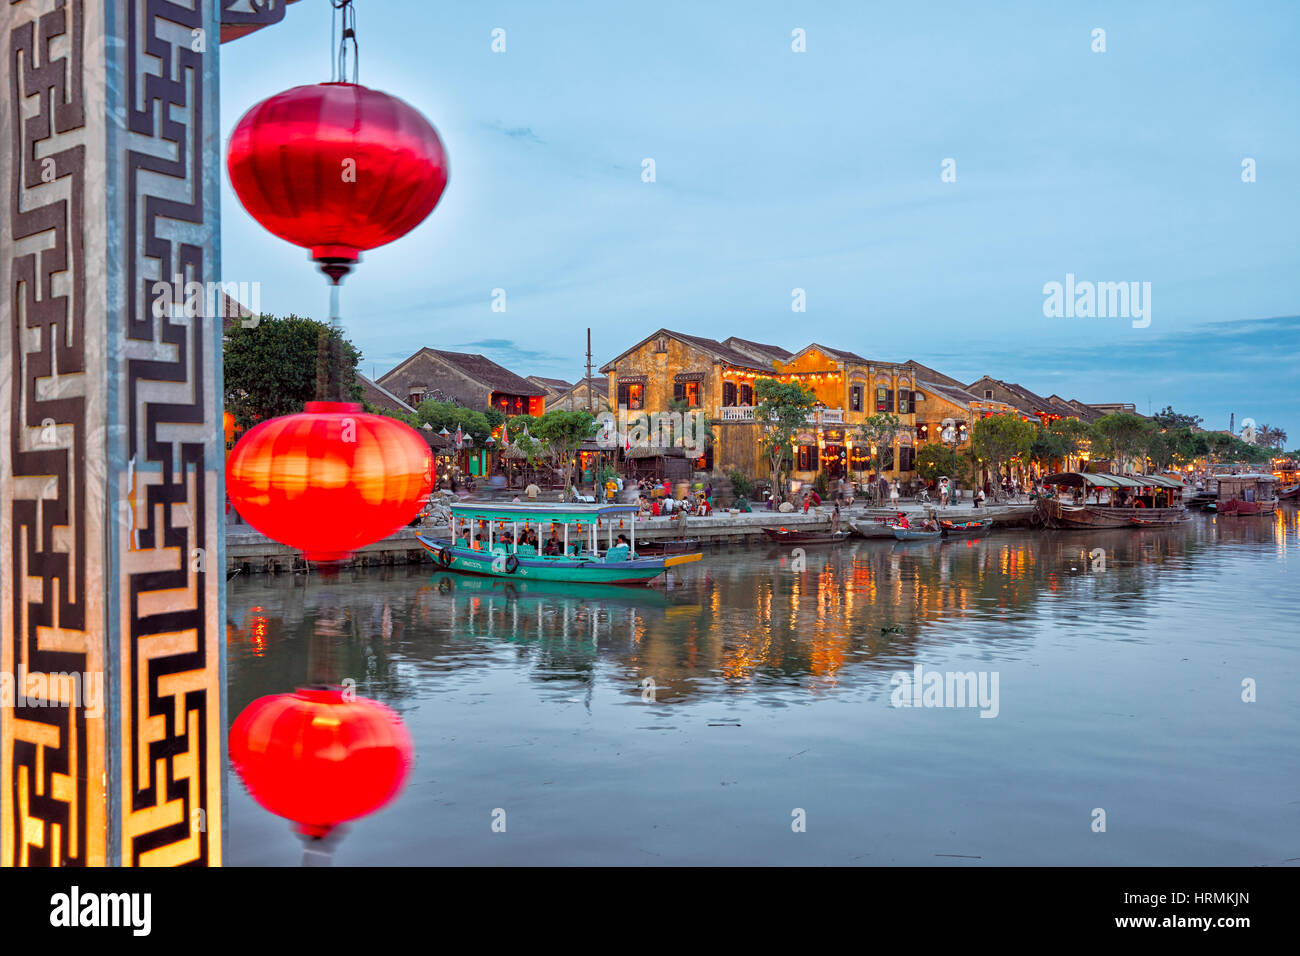 Red lanterns on Cau An Hoi Bridge and view of Hoi An Ancient Town at dusk. Hoi An, Quang Nam Province, Vietnam. - Stock Image